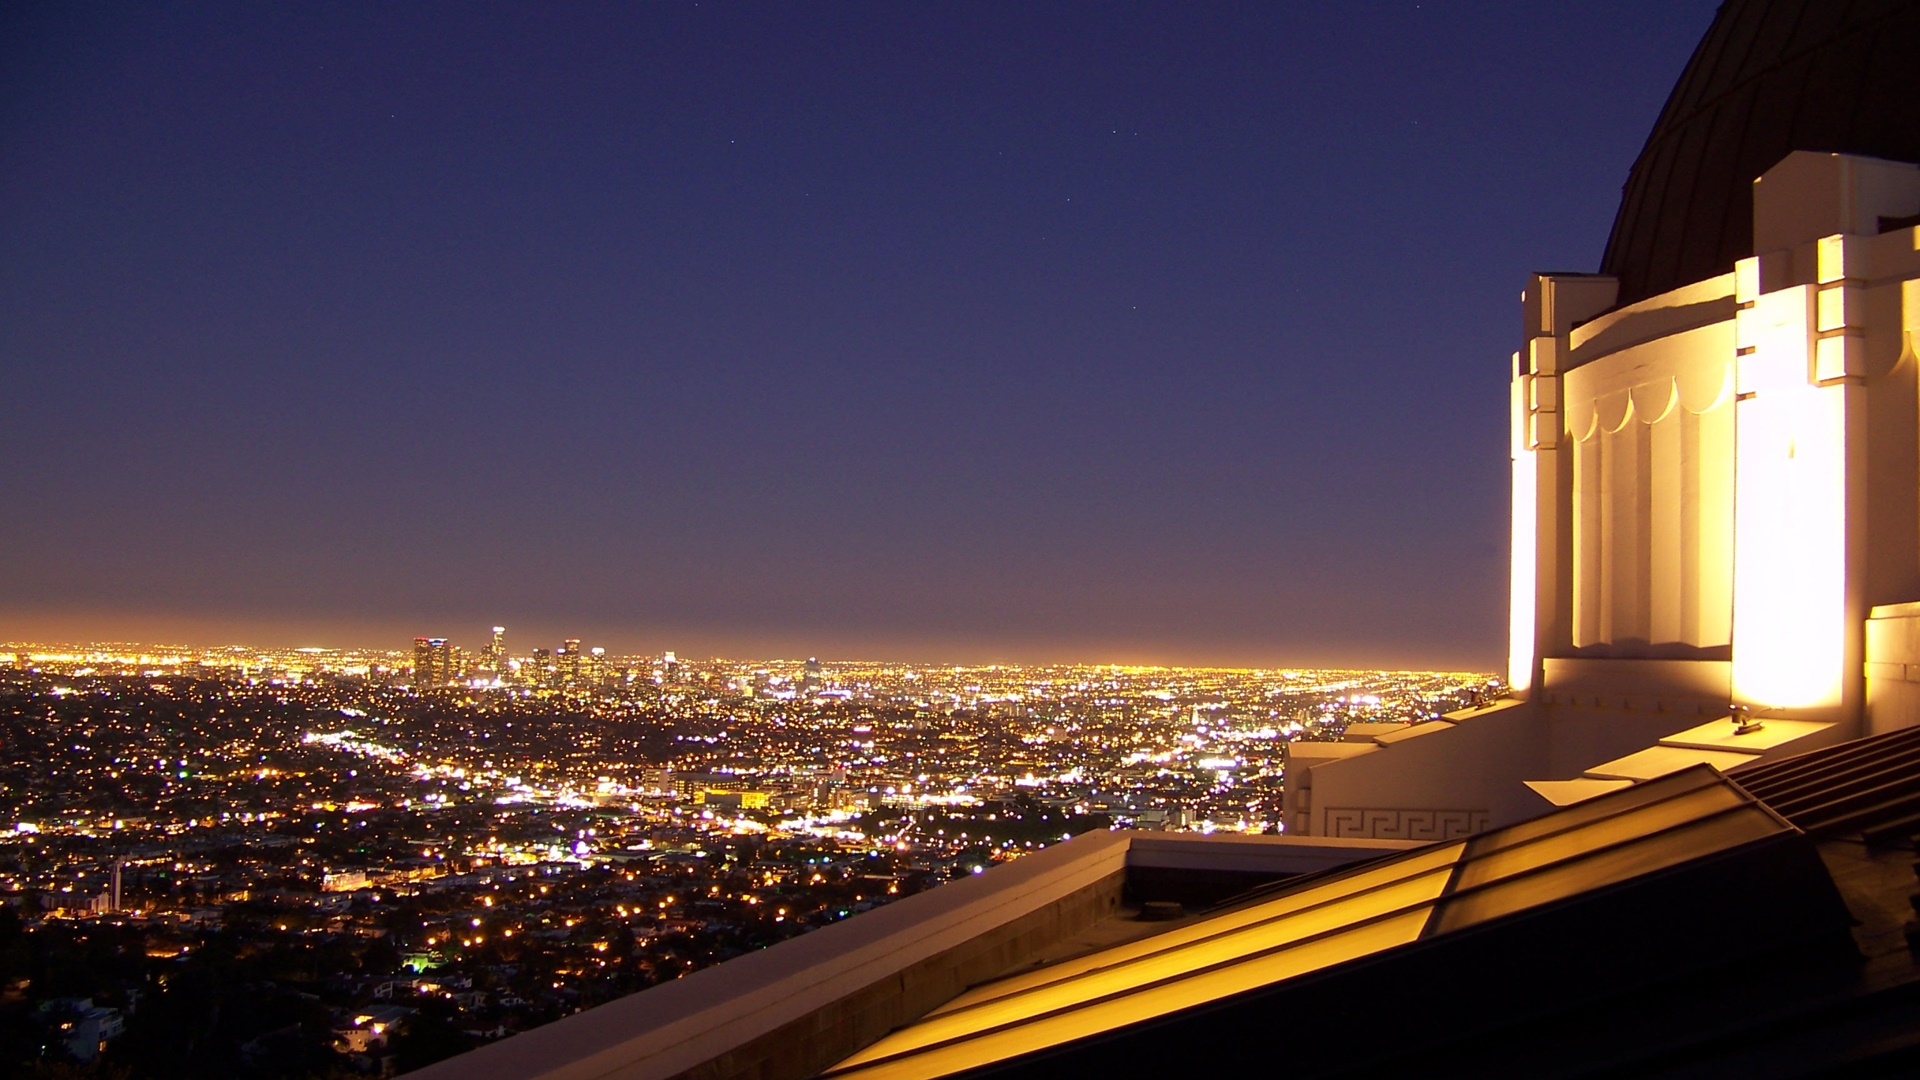 Los Angeles from Griffith Observatory wallpaper